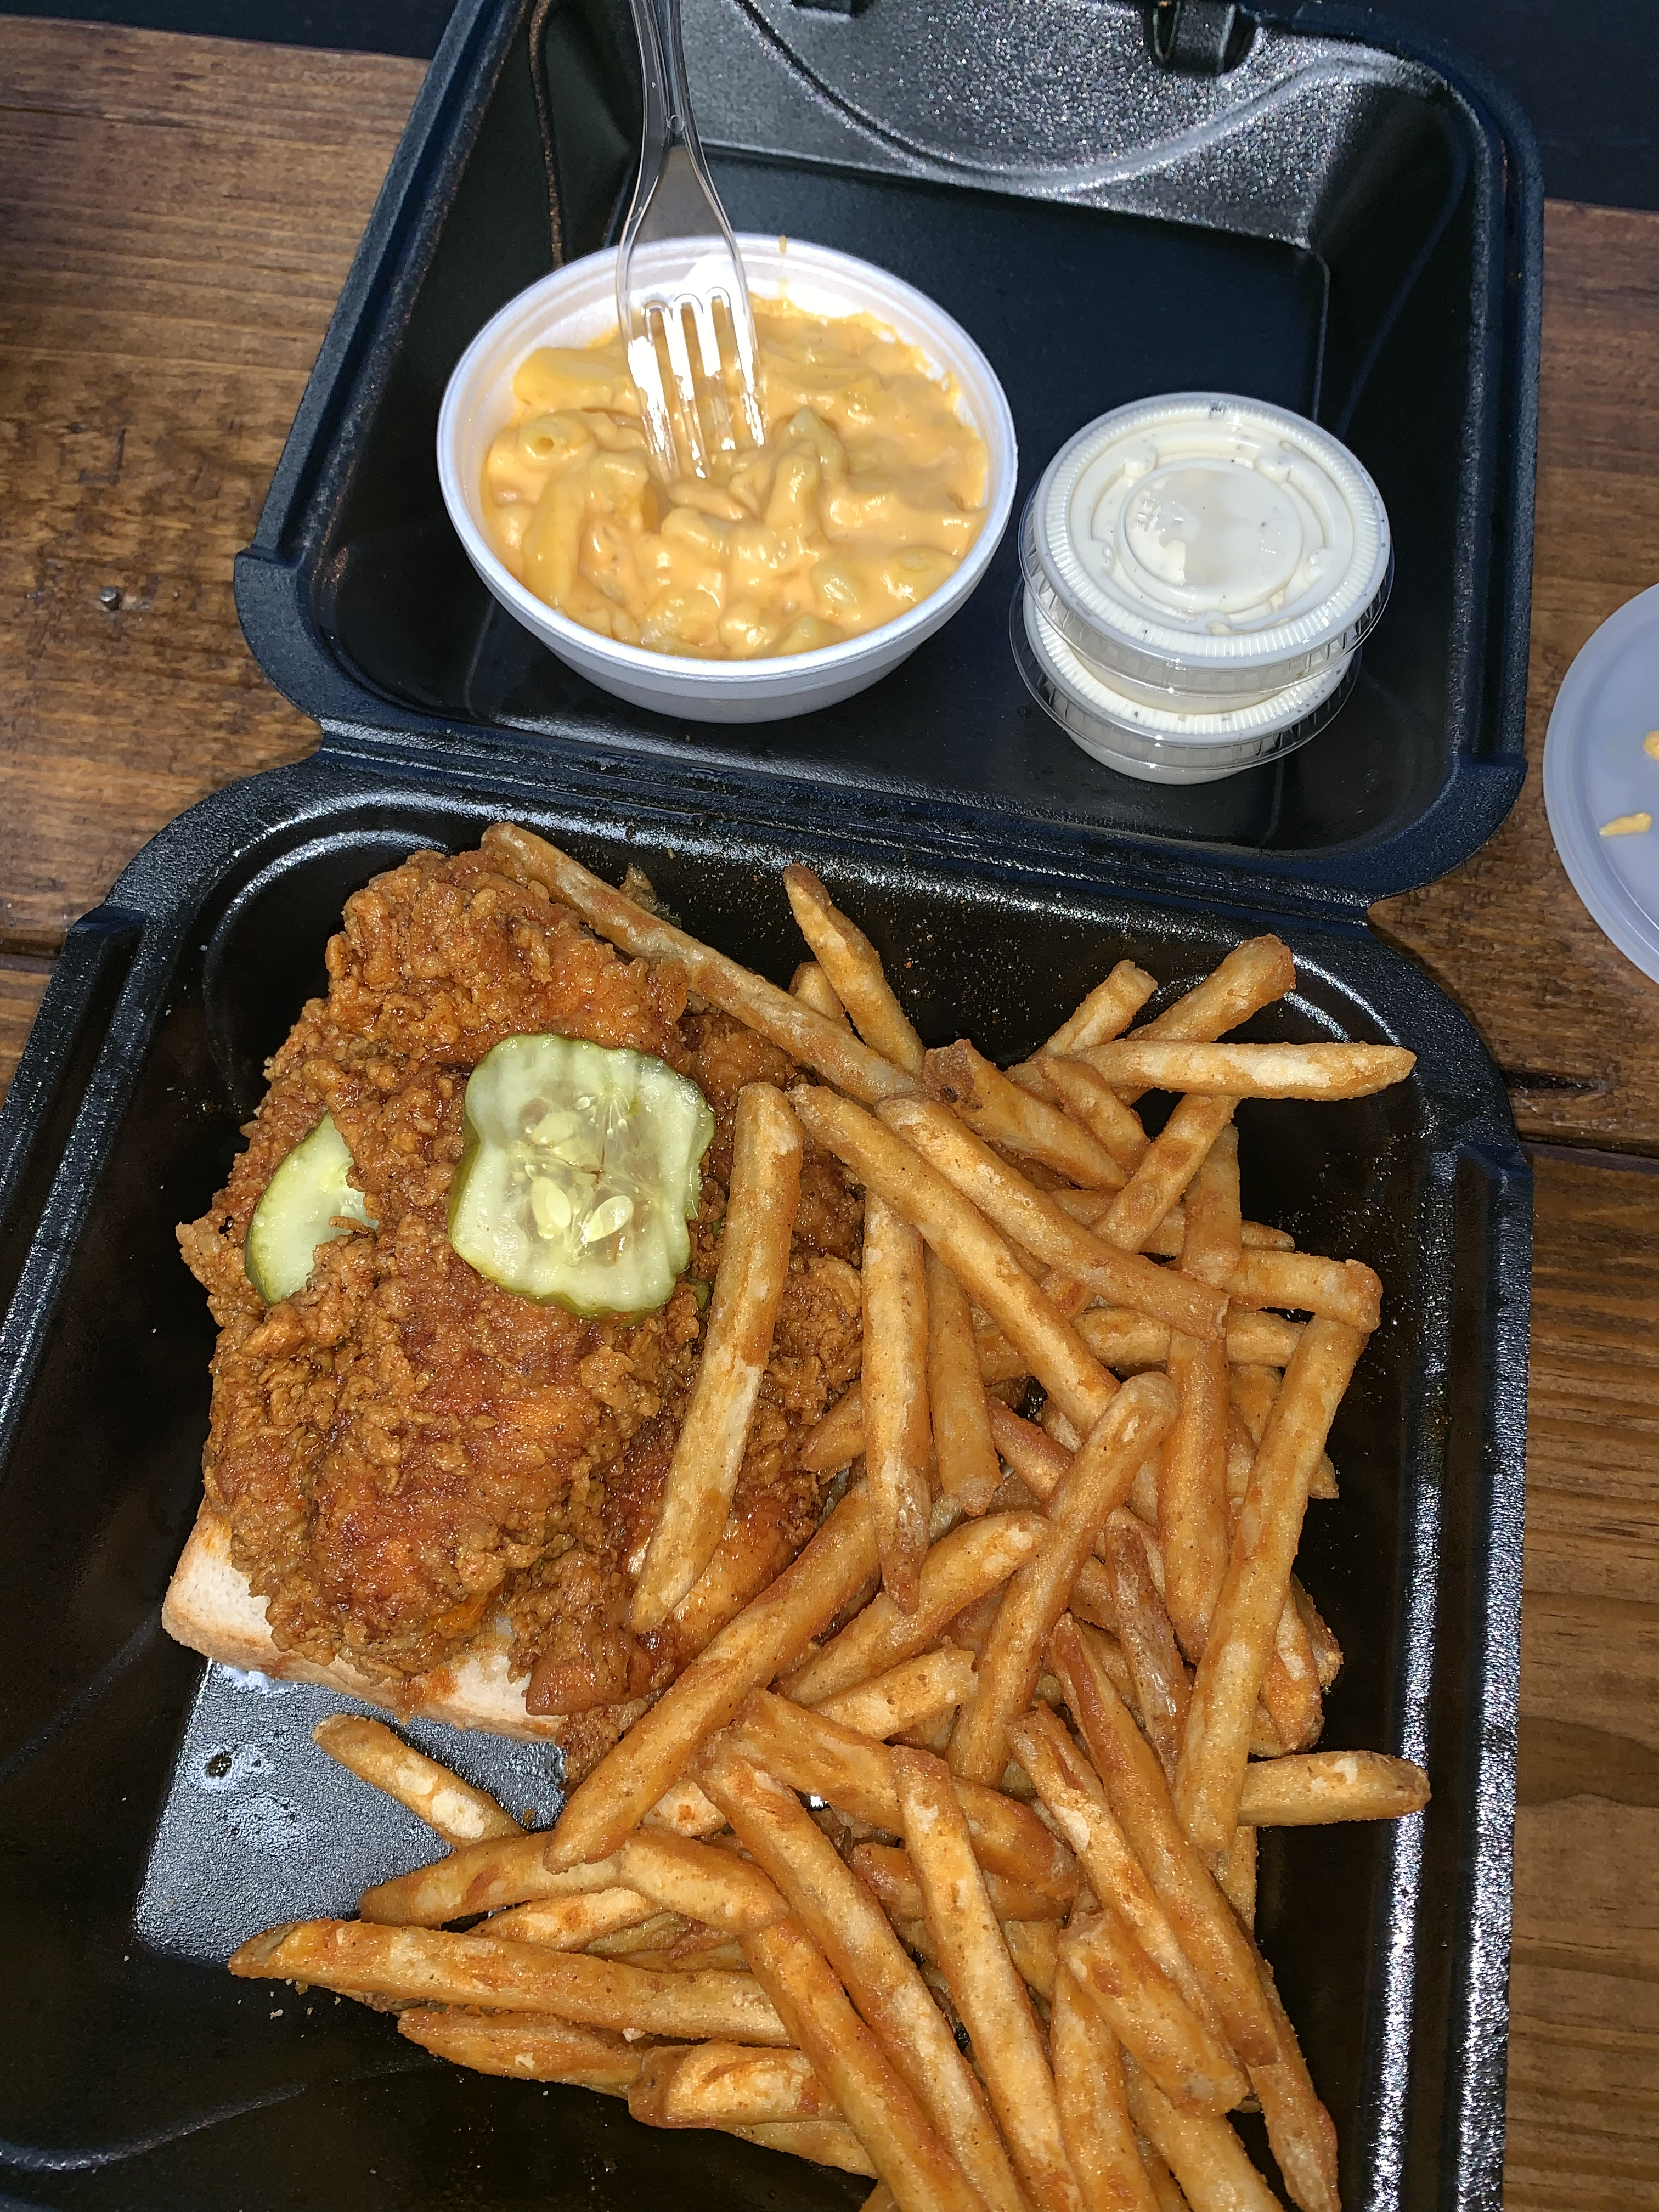 3 Tenders Nashville Hot dinner, with a side of fries and mac and cheese